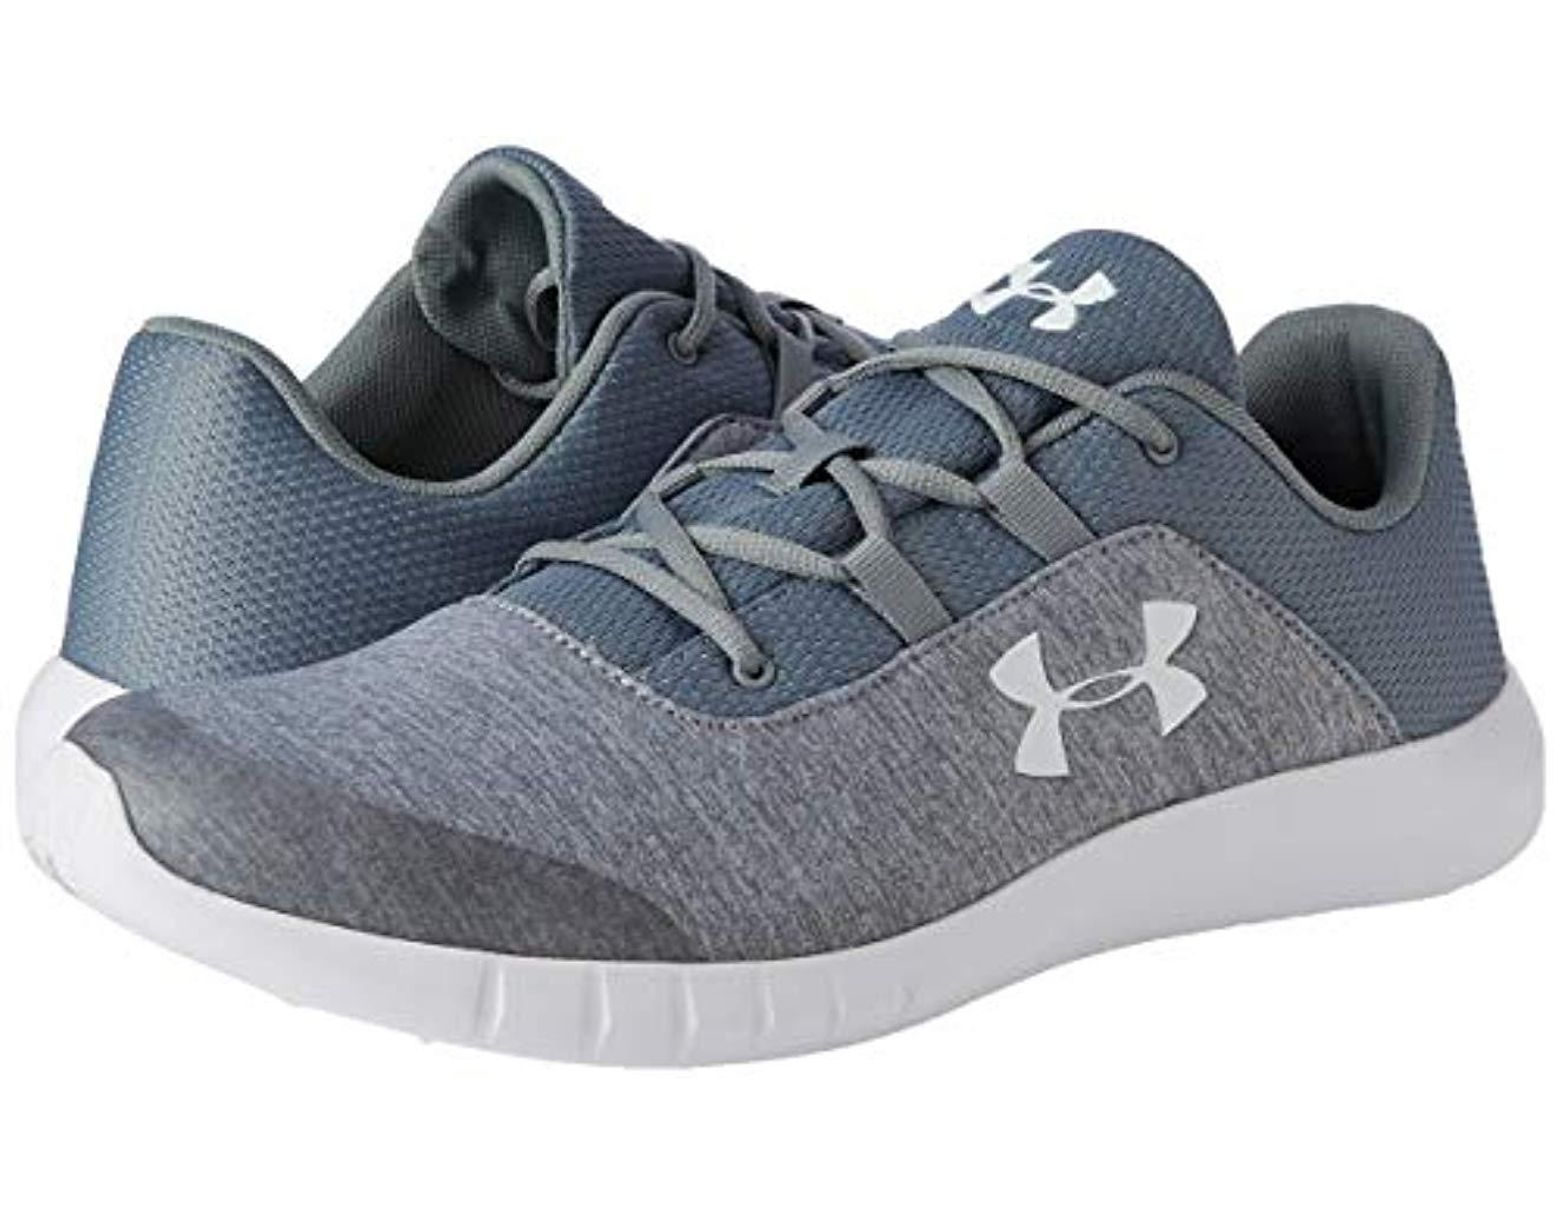 In Trainers Fast Gym Mojo Shoes For Drying And Under Running Armour MpSVUz